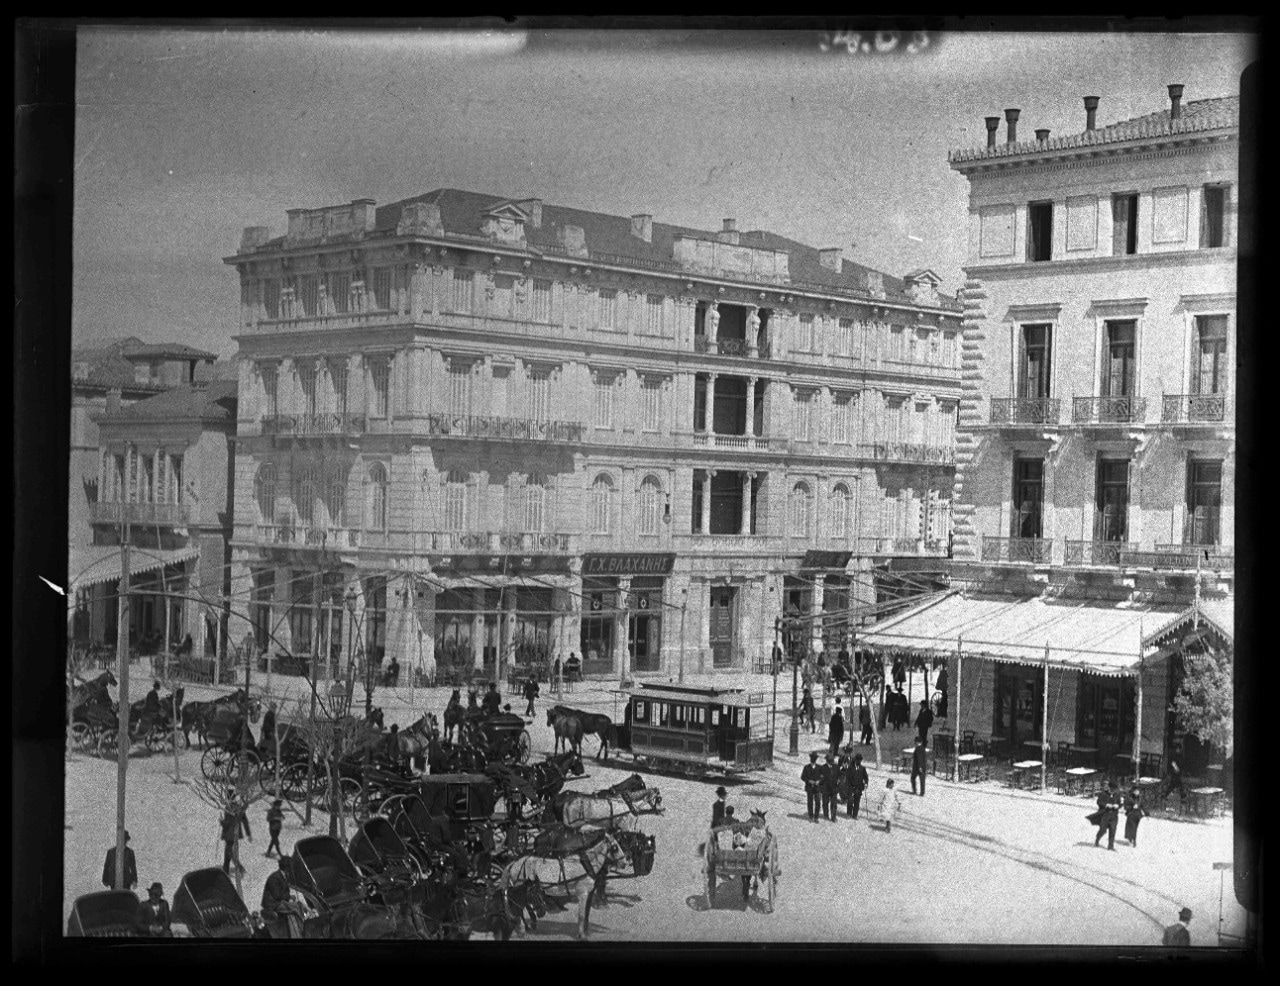 An image of Syntagma Square, in the centre of Athens. Viewers were able to decipher - from the tram-horses and buildings featured in the image - that the photo was likely taken in the first decade of the 20th century.  Credit: NM2007.14.3.